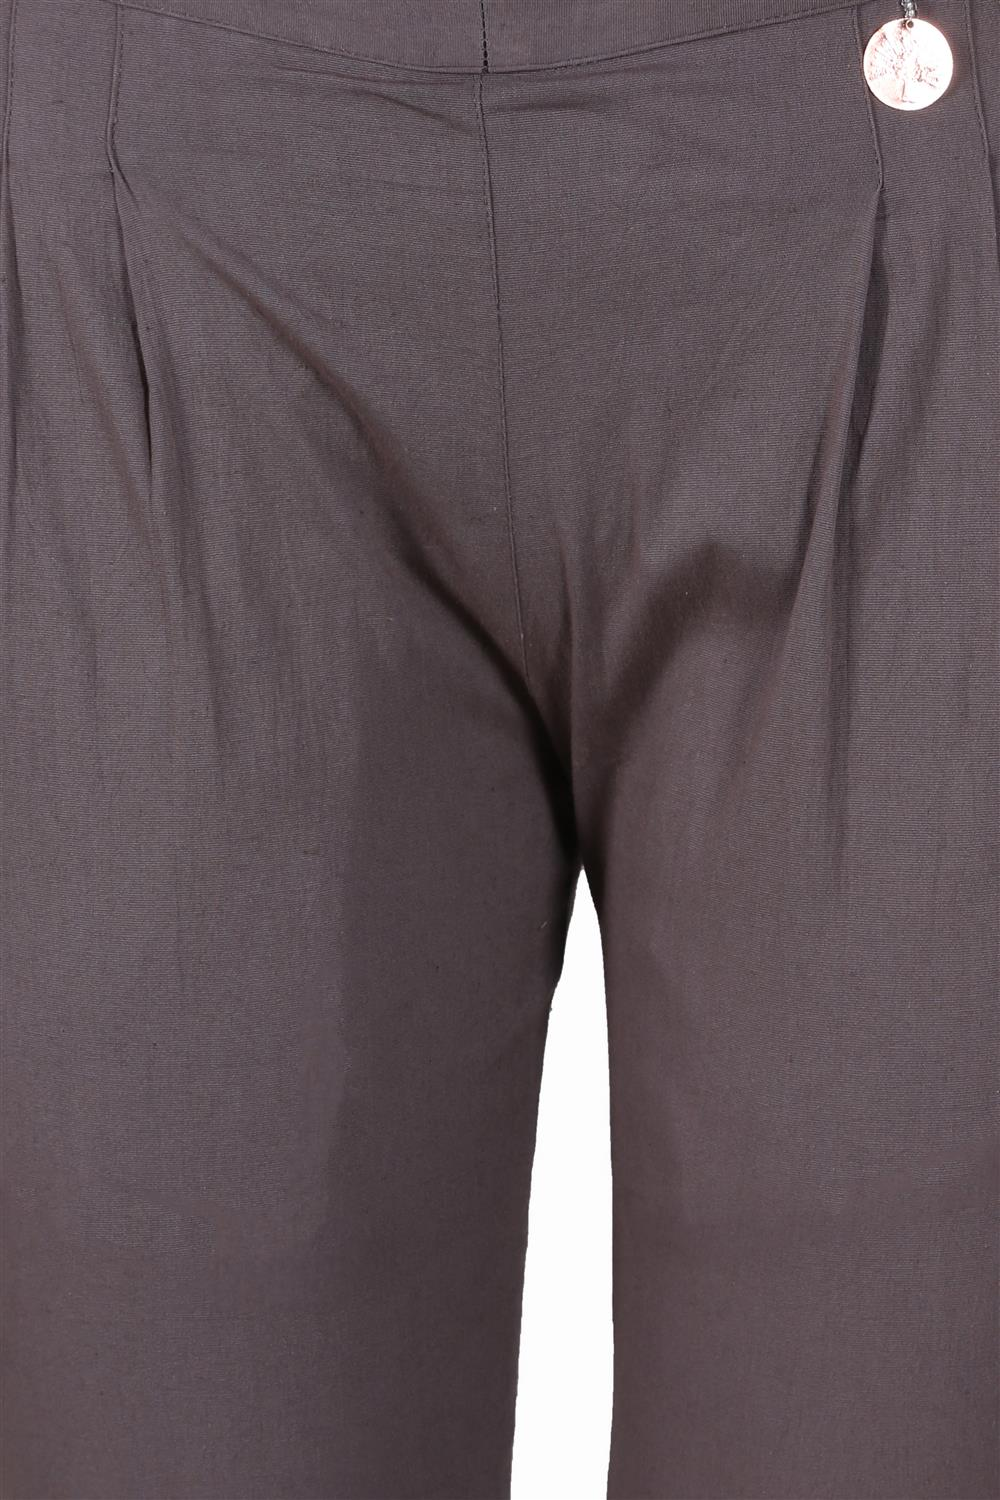 BROWN LYCRA PANTS